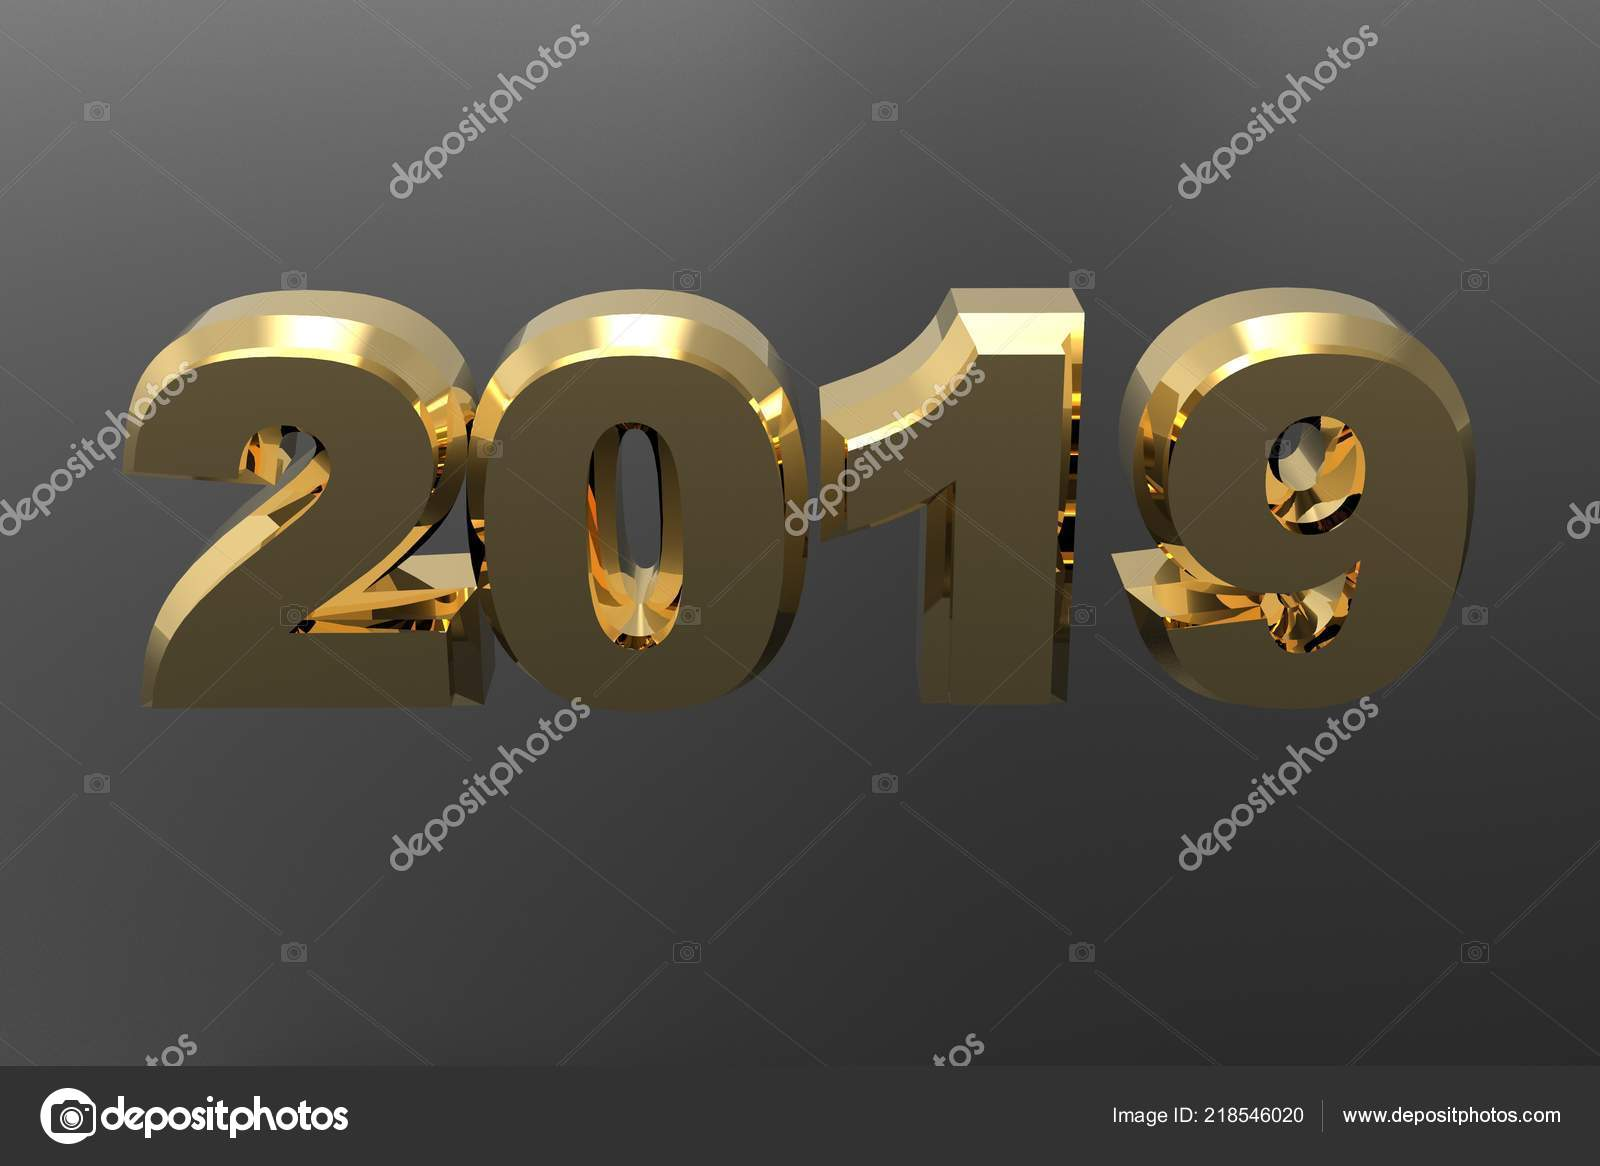 new year golden text 2019 rendering isolated gray background stock photo